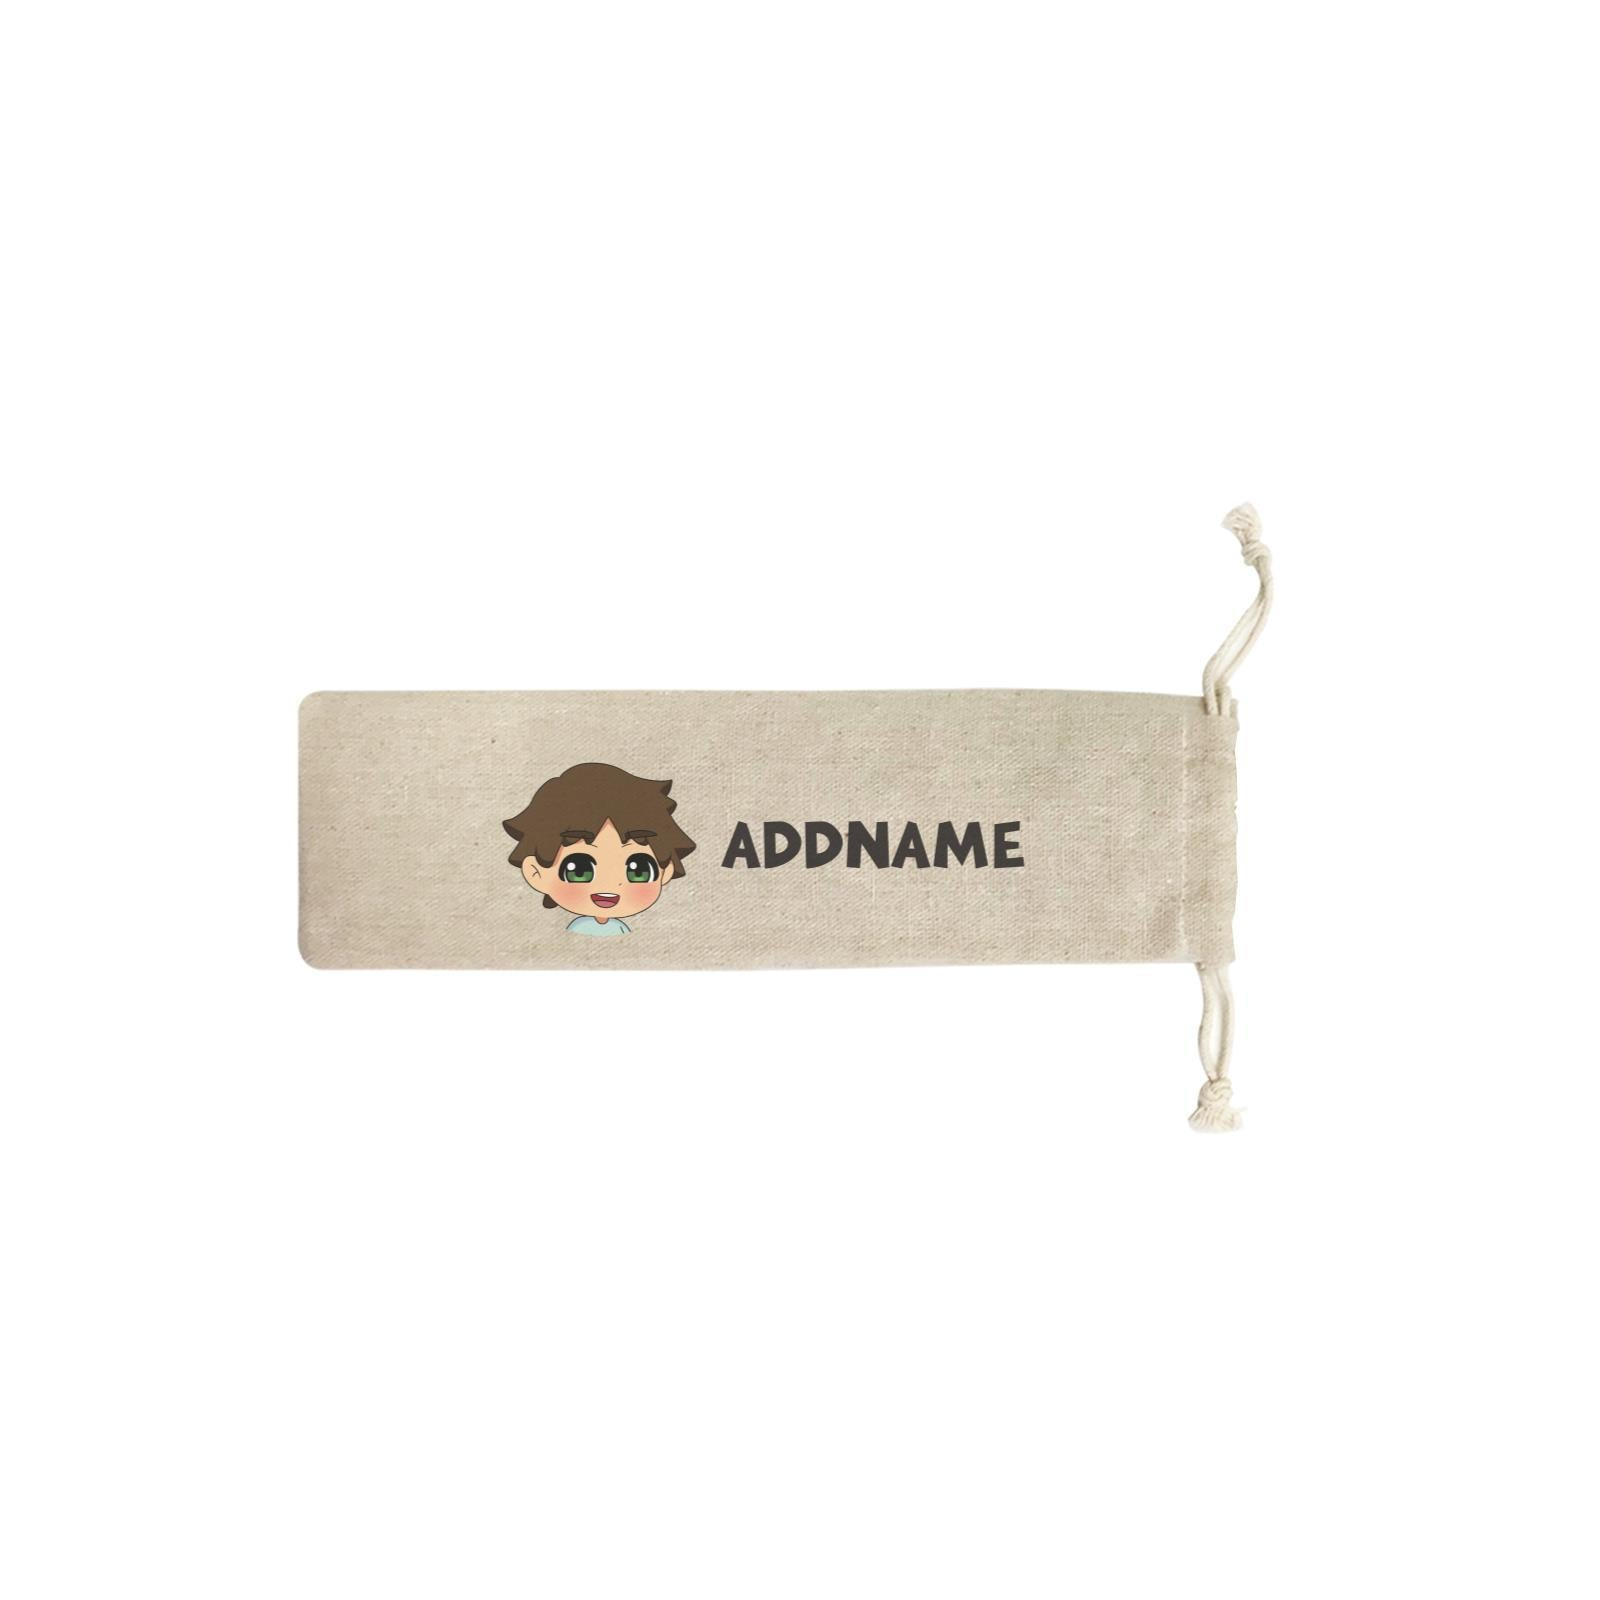 Children's Day Gift Series Little Boy Facing Left Addname SB Straw Pouch (No Straws included)